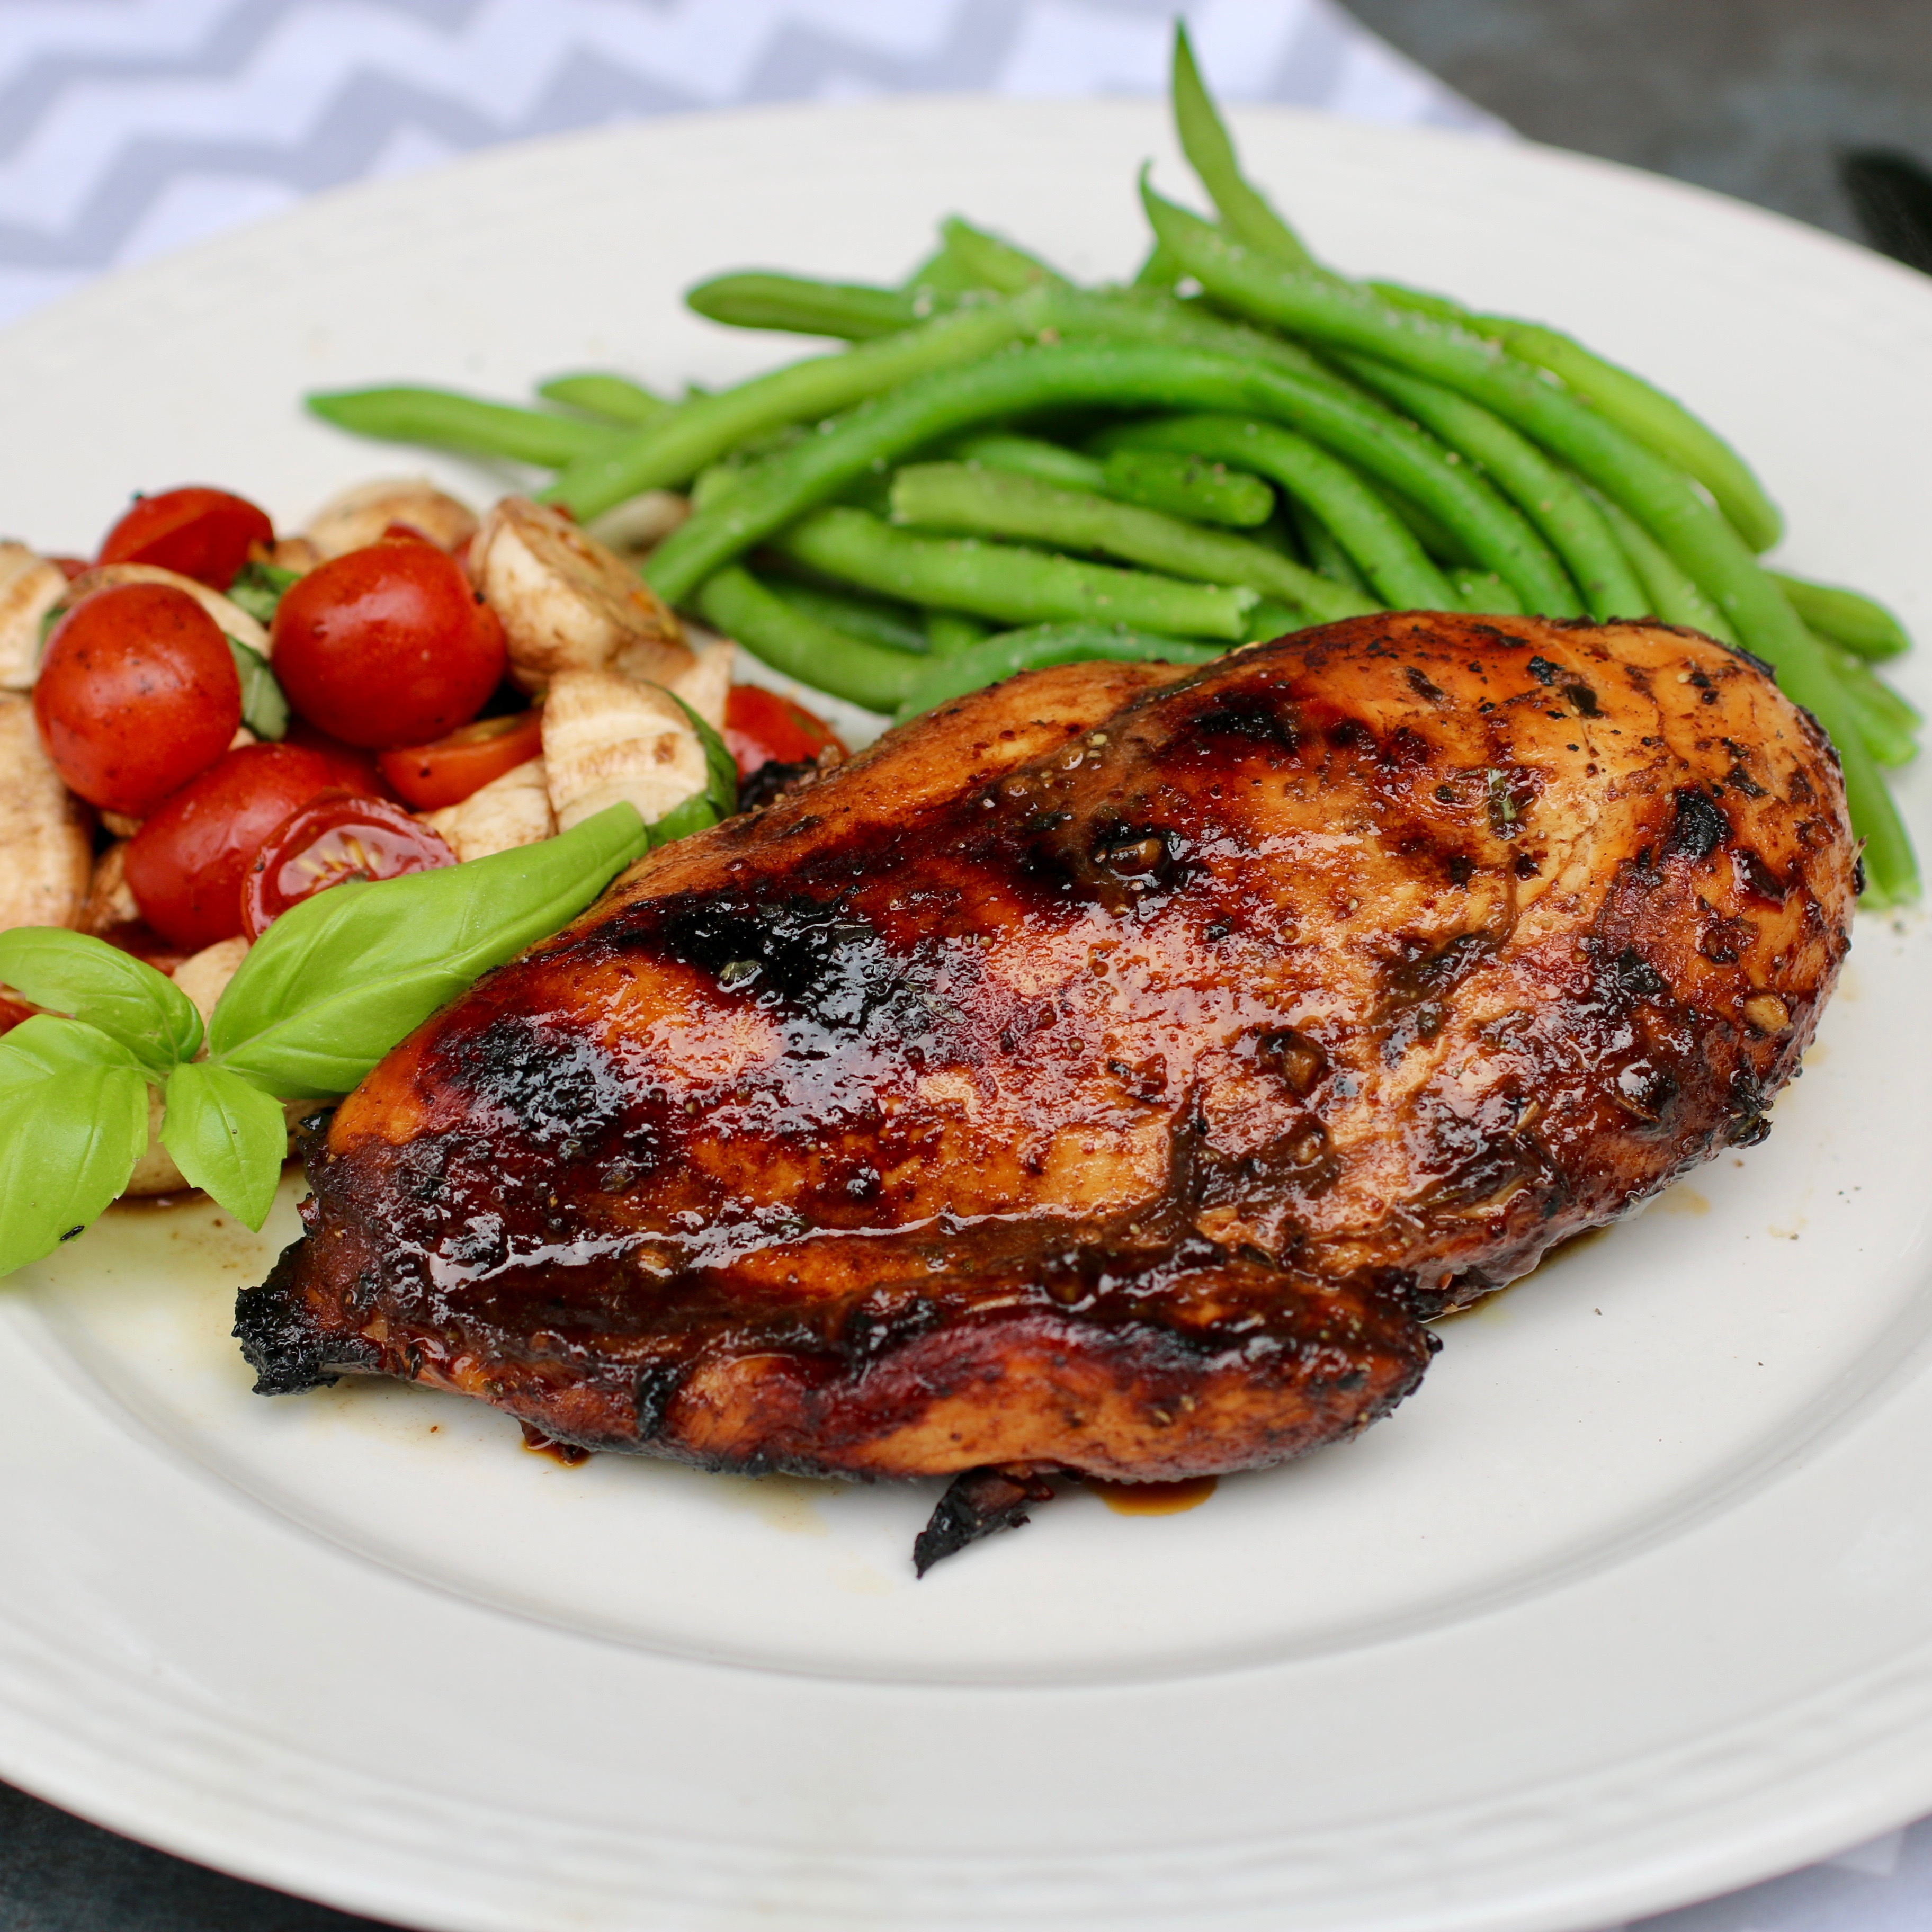 Grilled Balsamic Chicken Breast